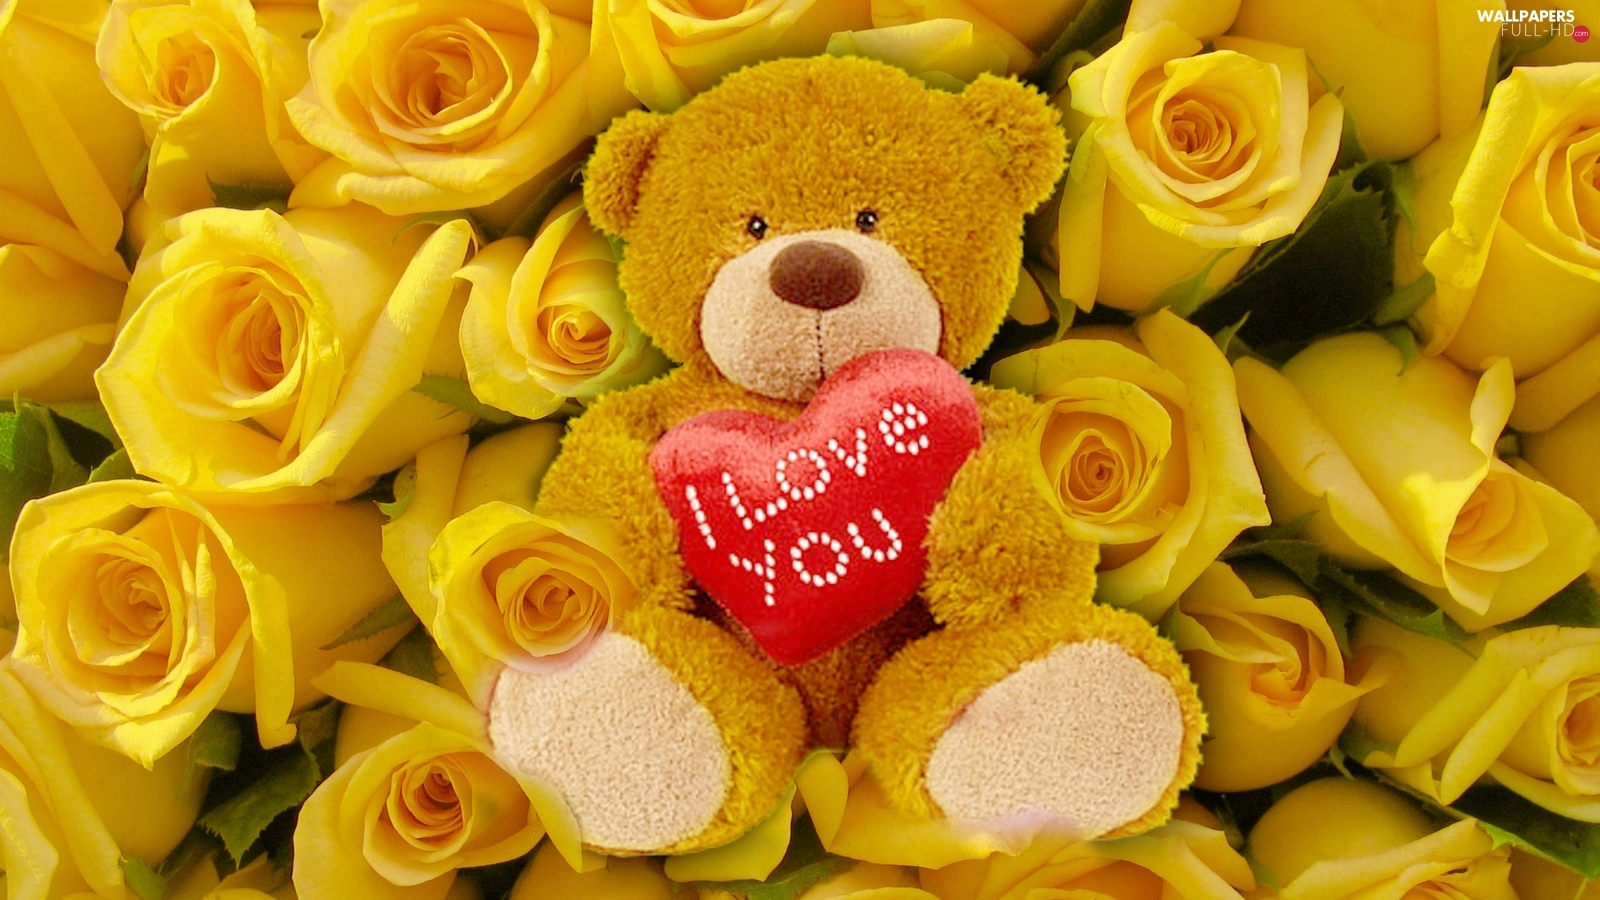 Heart teddybear, teddy bear, Yellow, roses